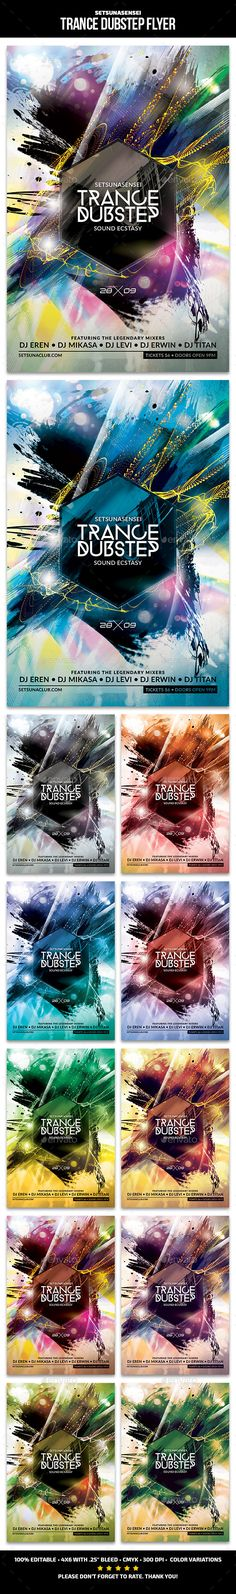 Trance Dubstep Flyer — Photoshop PSD #techno #trance flyer • Available here → https://graphicriver.net/item/trance-dubstep-flyer/12919821?ref=pxcr